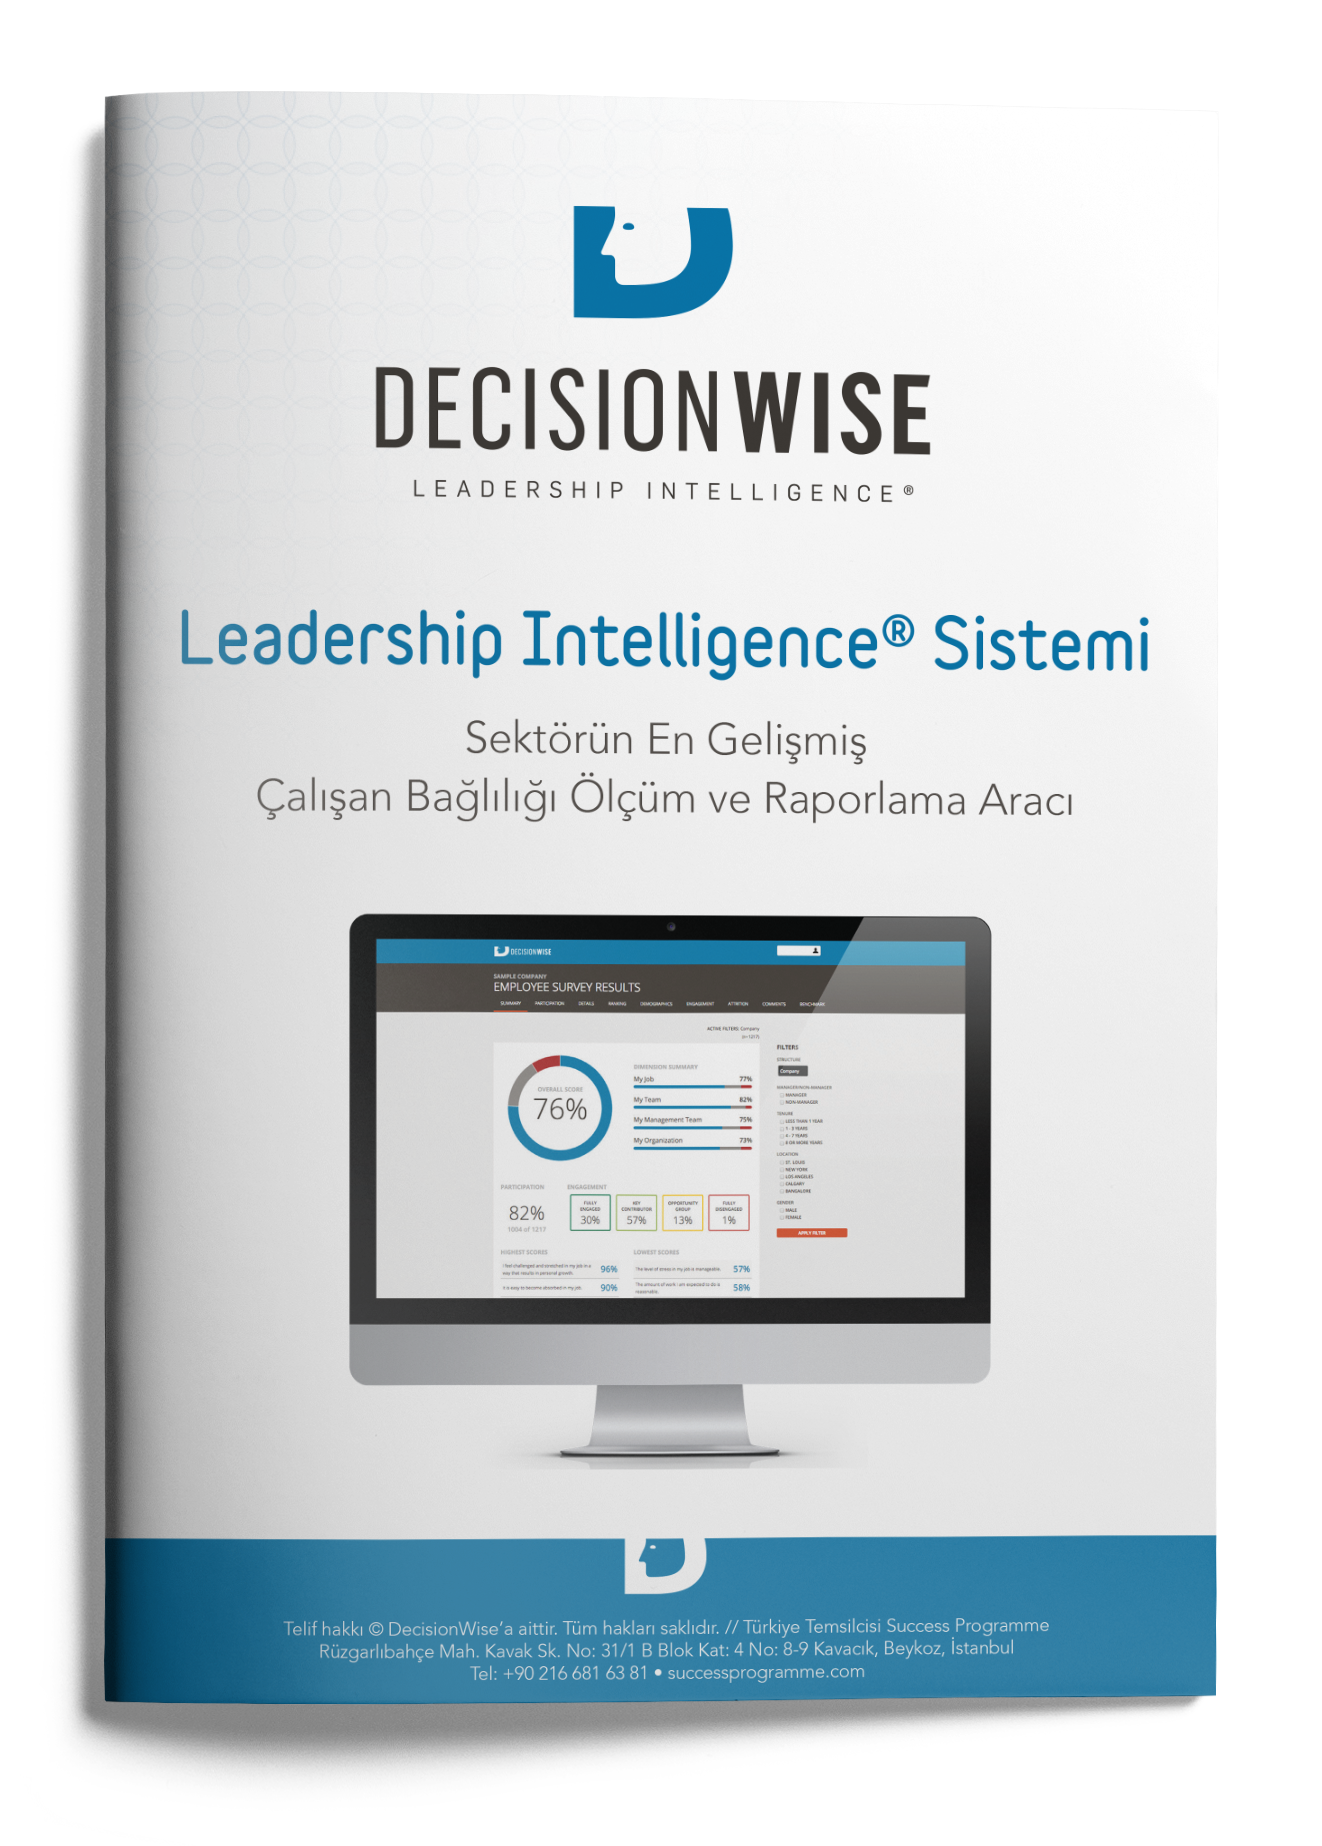 Leadership Intelligence System